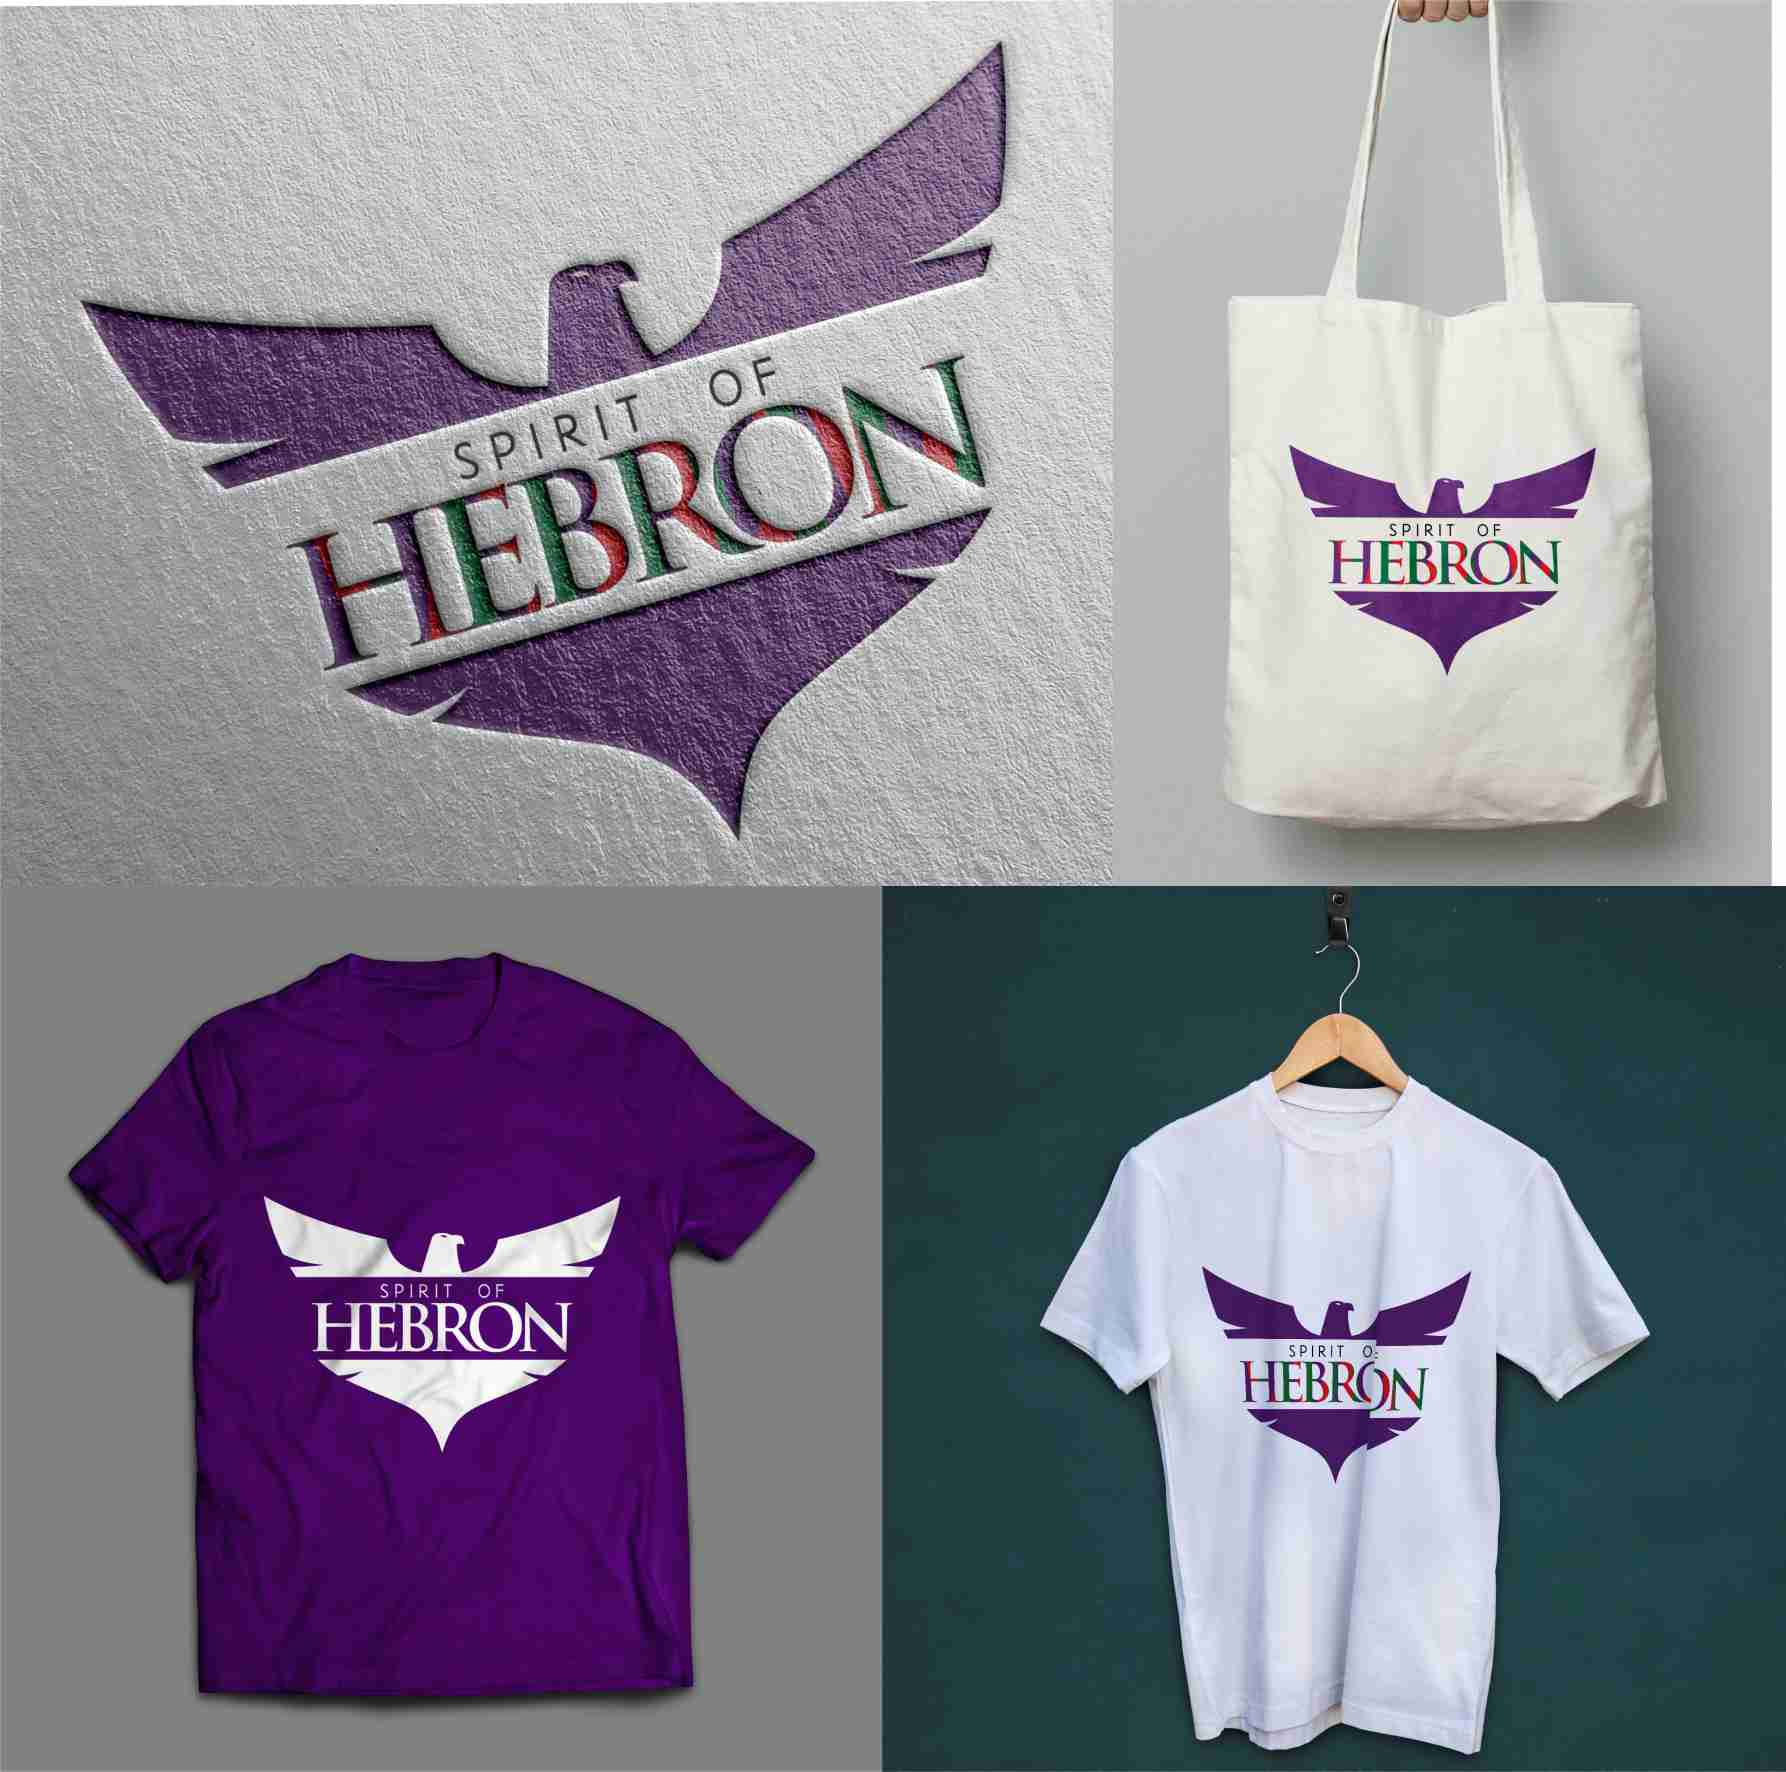 Covenant University Spirit of Hebron graphics design branding by David Rotimi